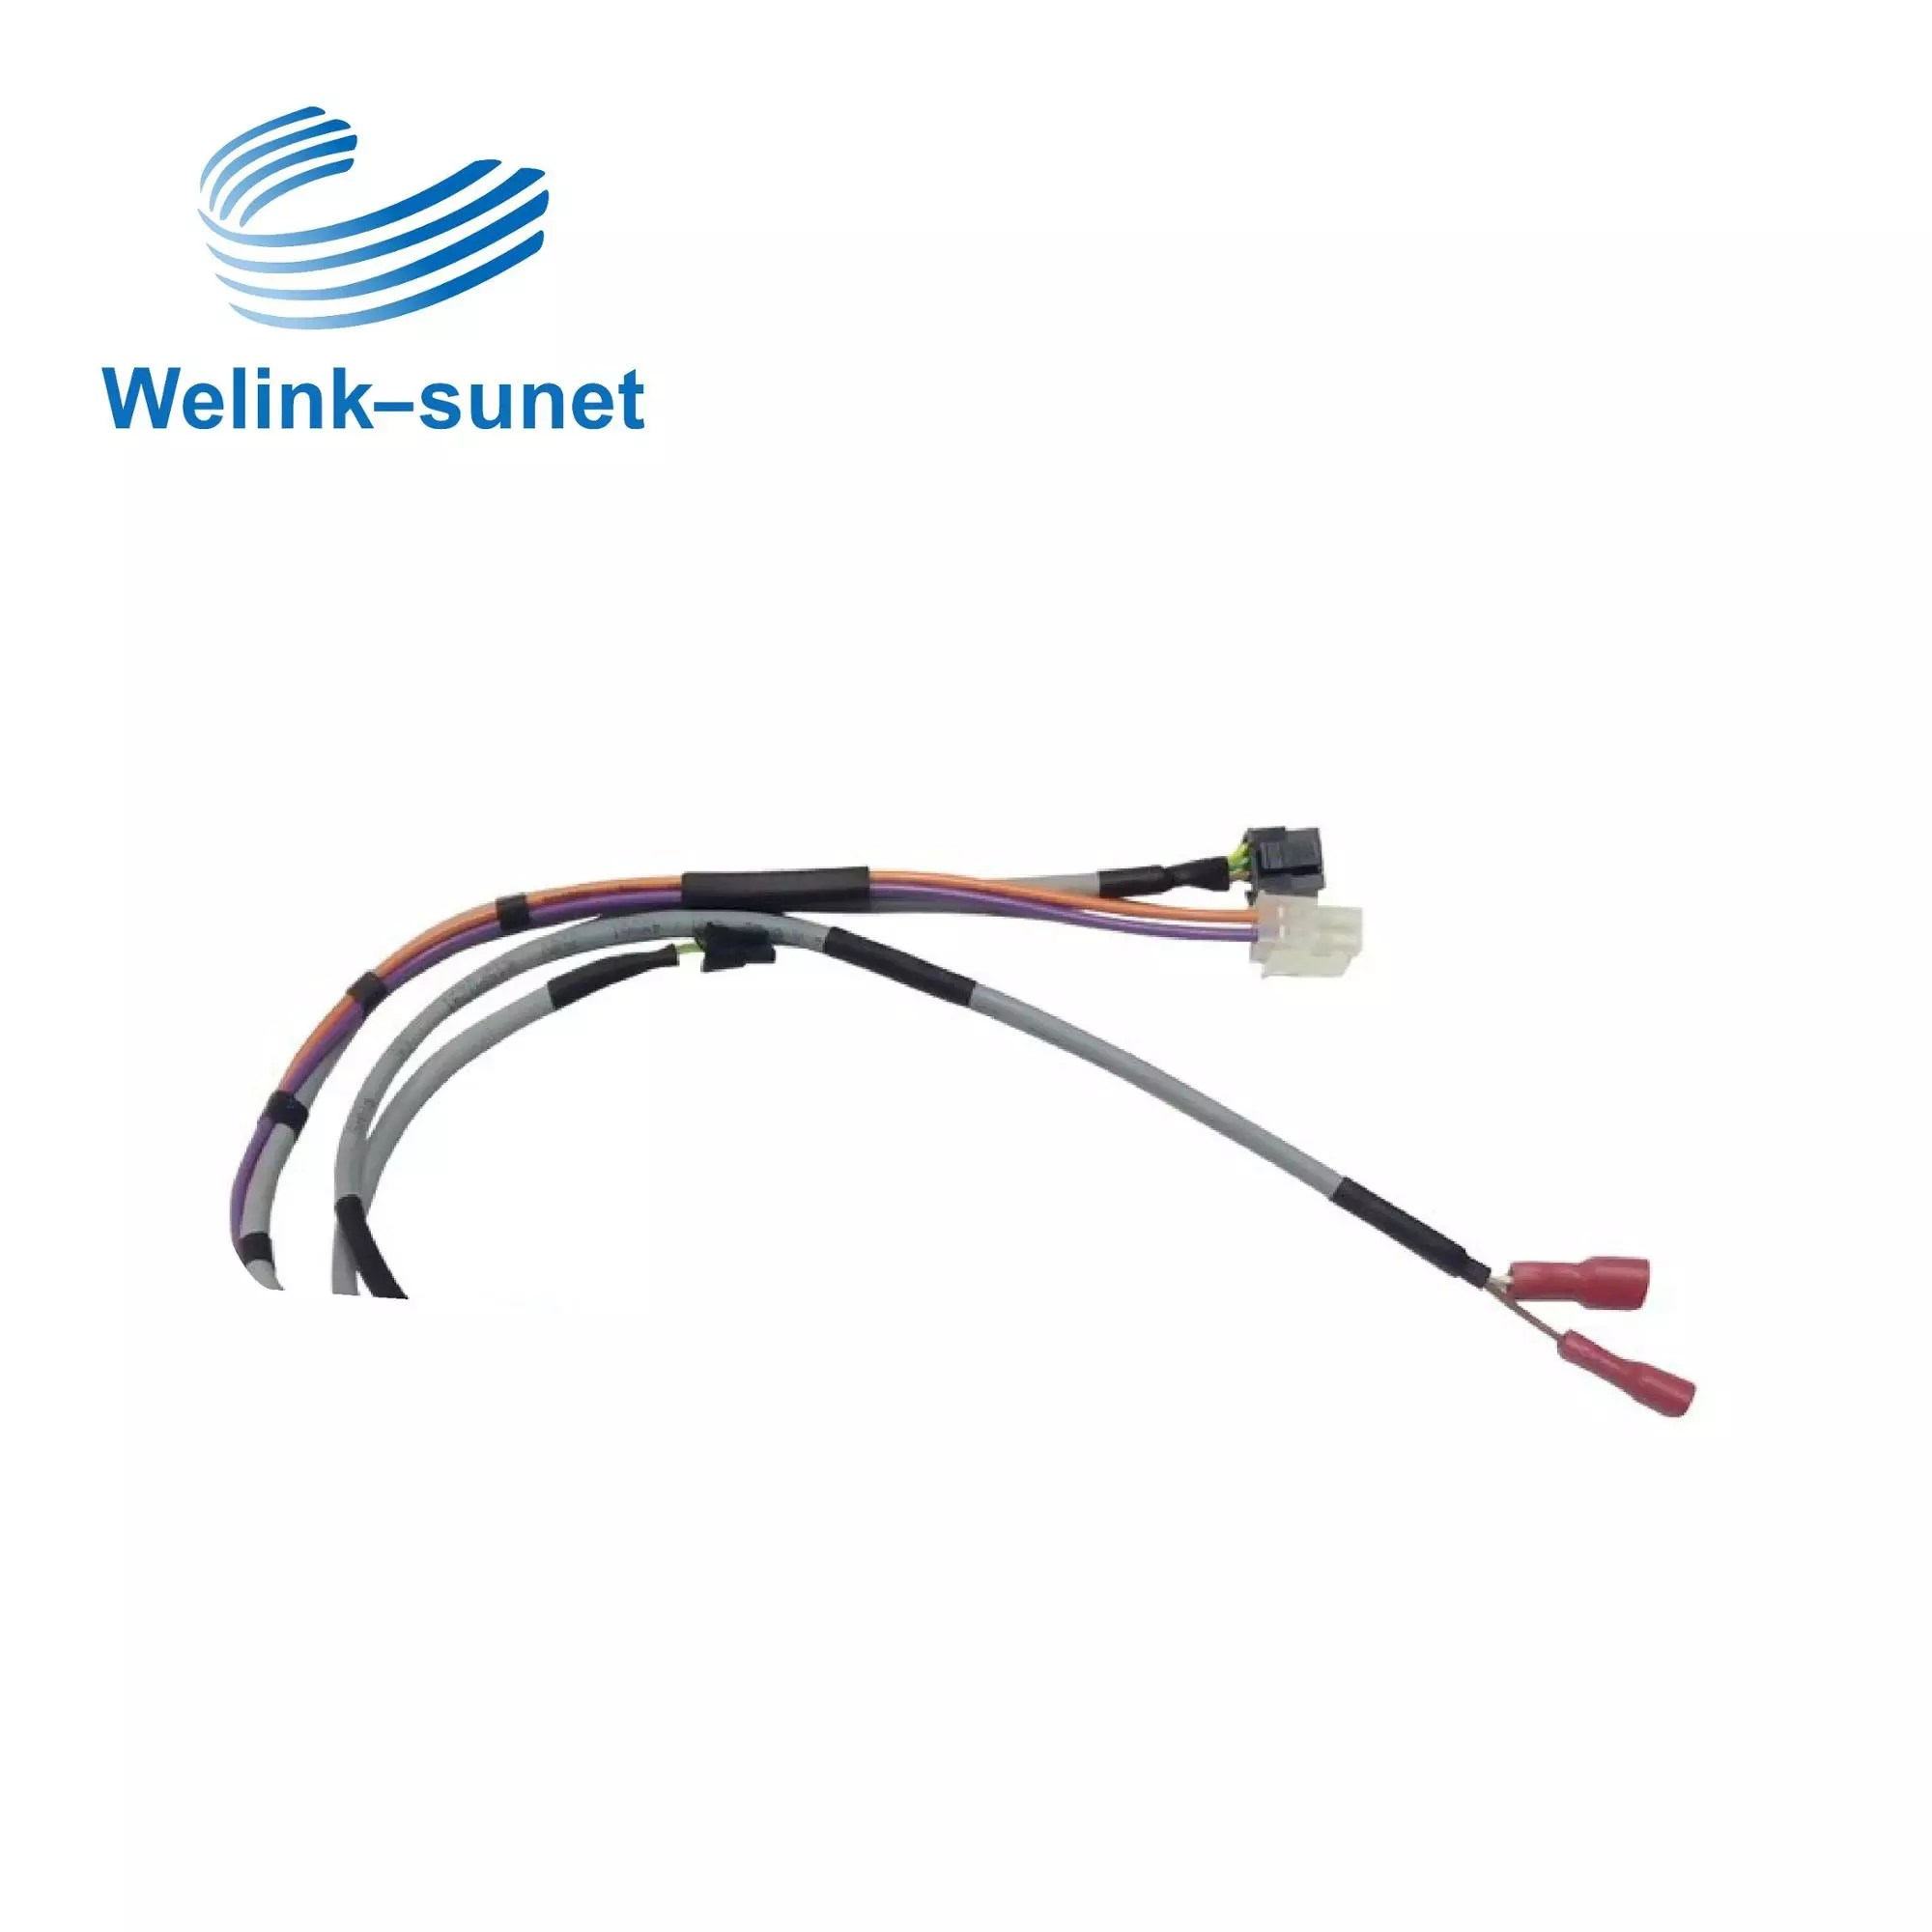 hight resolution of molex mic fit 24p add super flexible cable the machine control wire harness for communication equipment